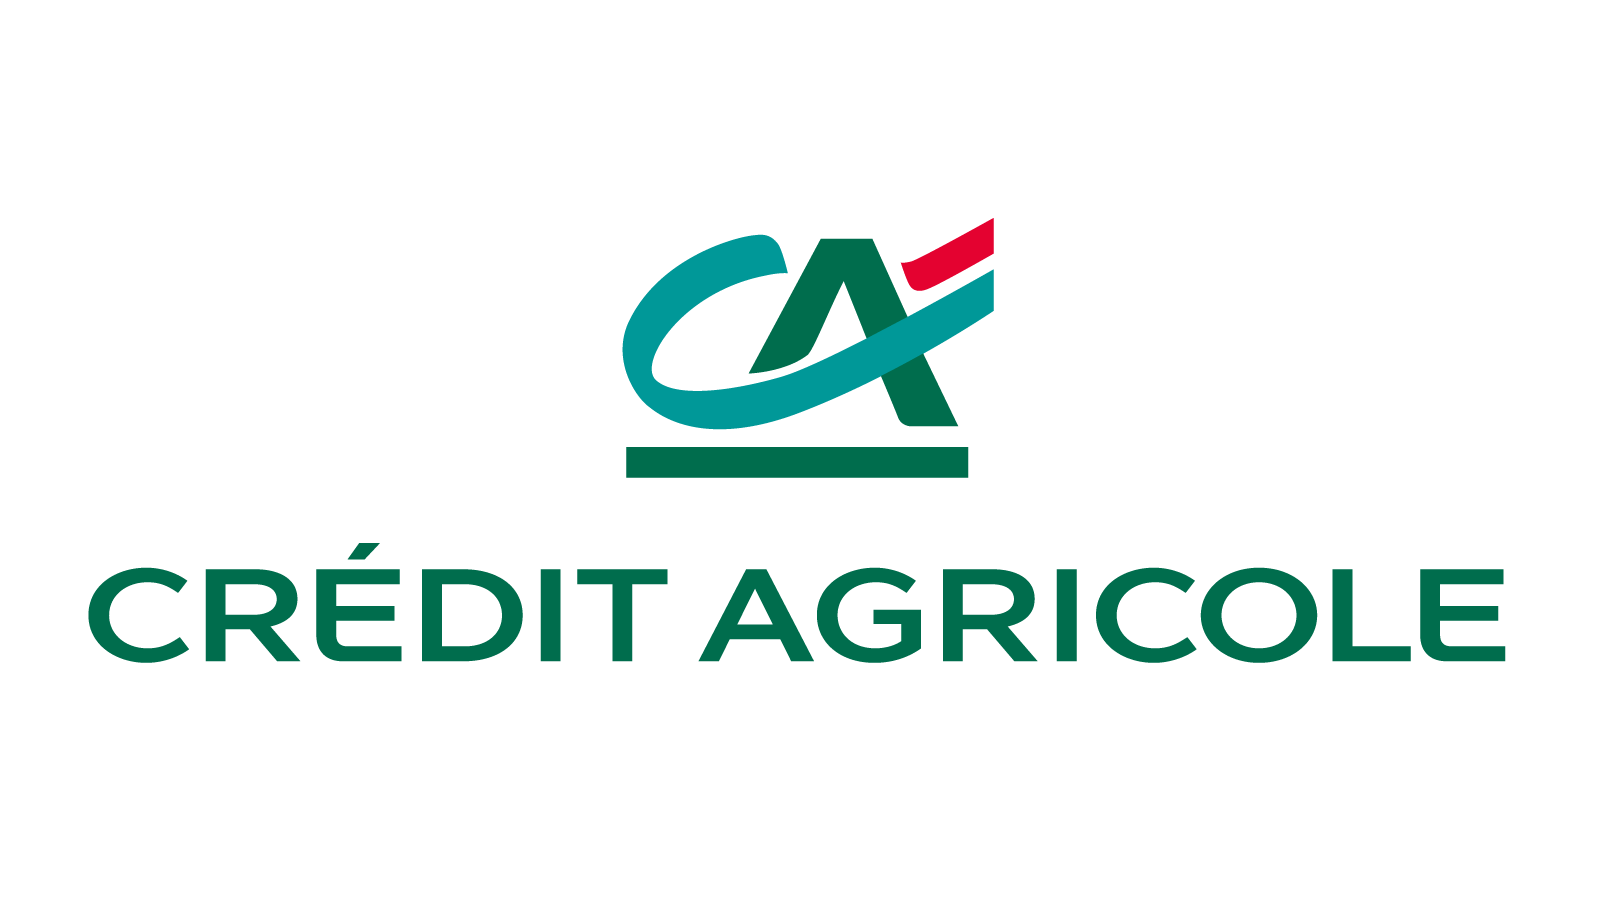 Groupe Crdit Agricole logo